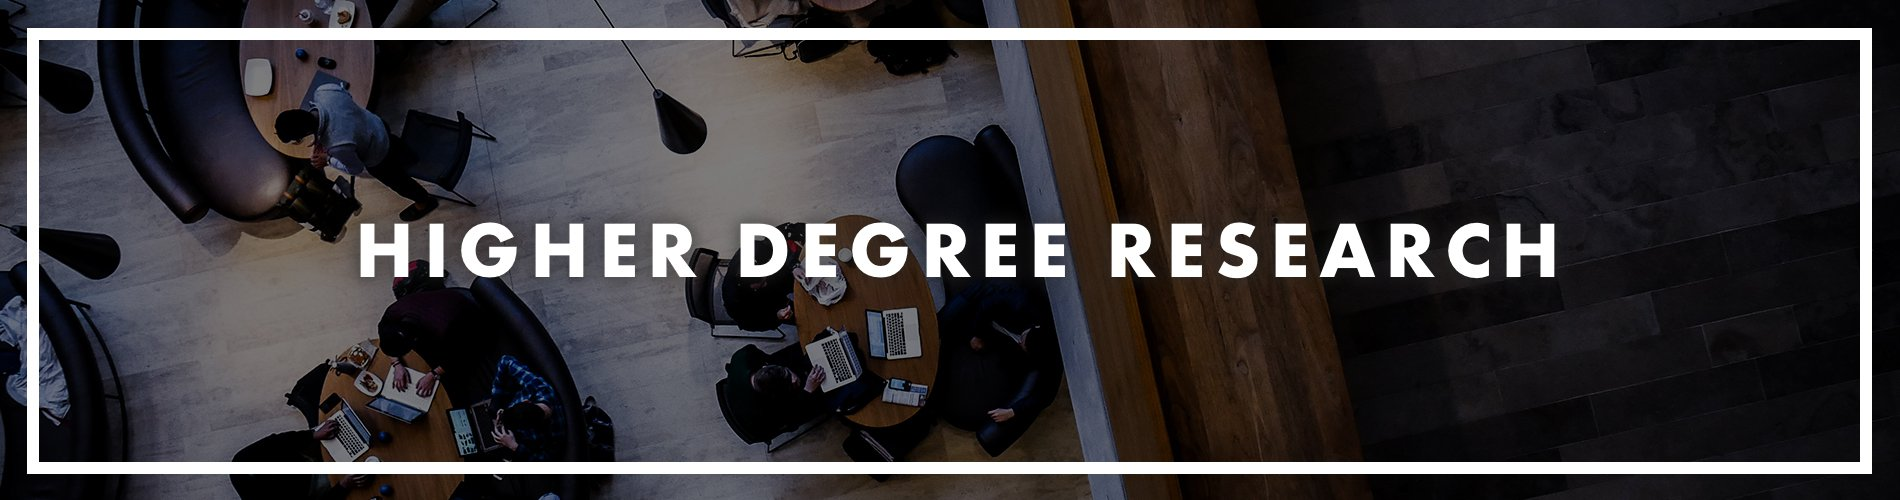 Higher Degree Research banner